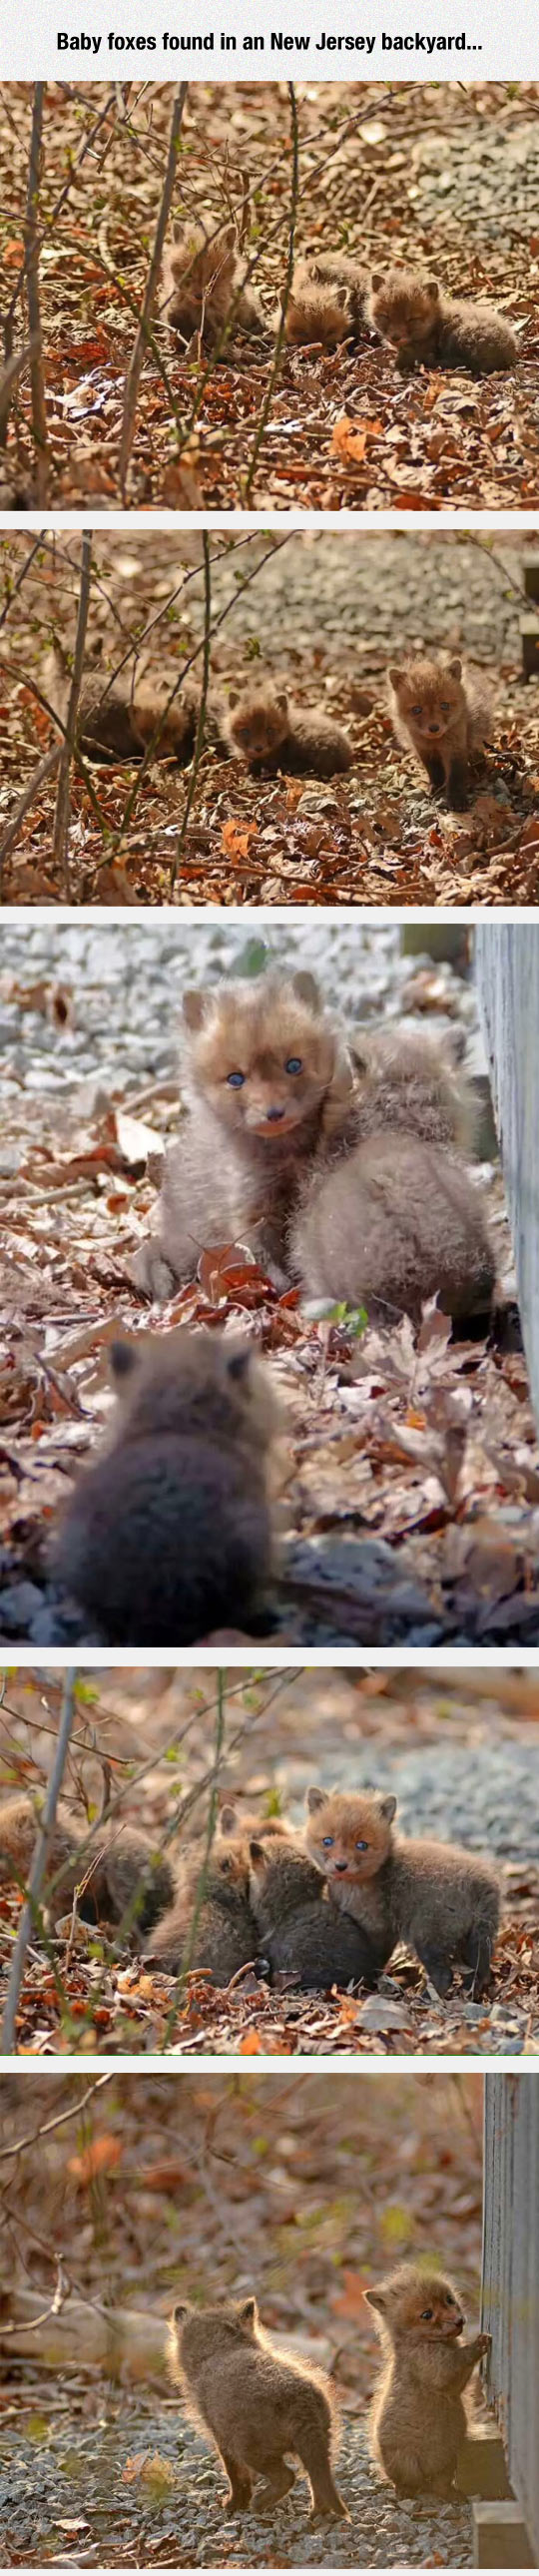 1-funny-backyard-baby-foxes-new-jersey